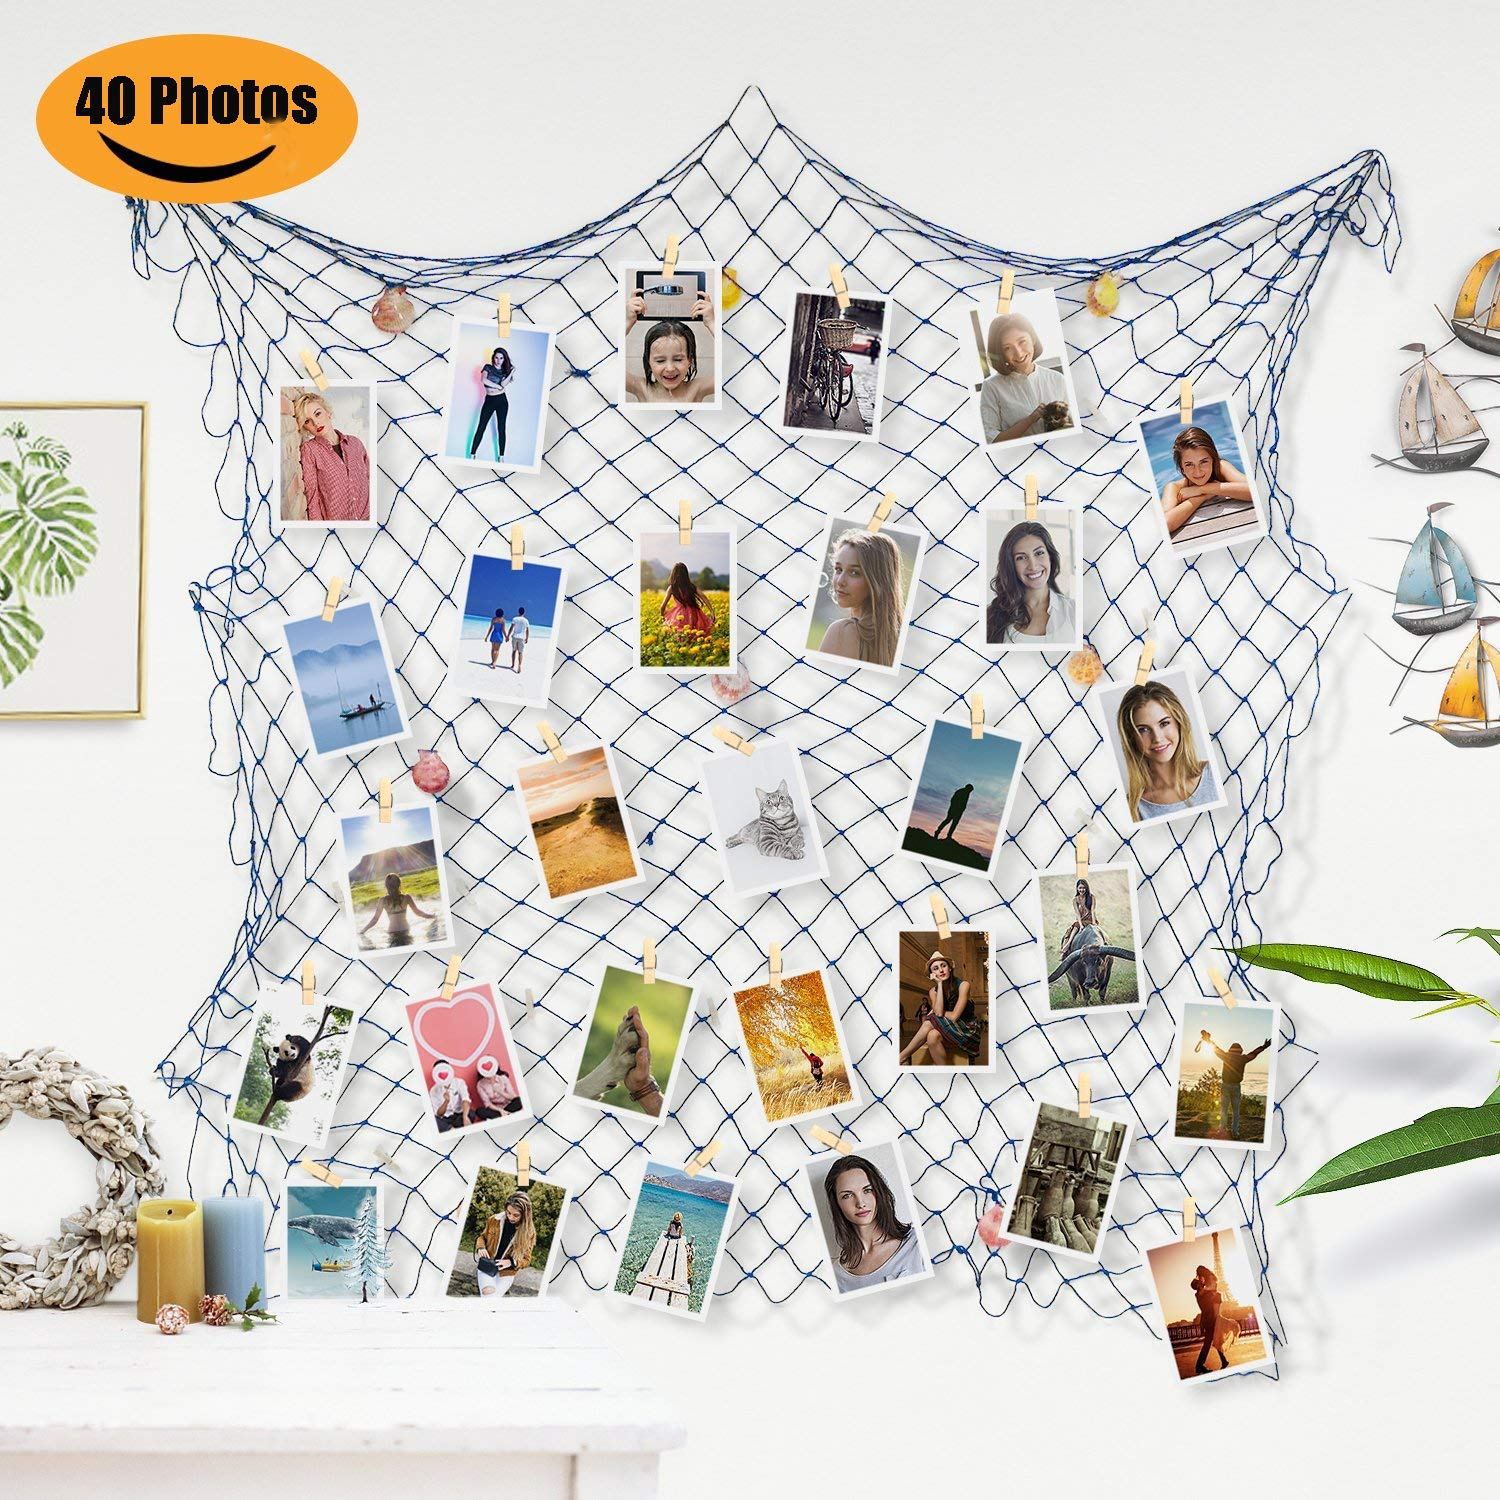 ZUEXT Photo Hanging Display Frames 79x40 Inch, Fishing Net Picture Frames Holder Wall Decor w/ 40 Clips & Anchors, Artworks Photos Organizer, Nautical Theme Fish Net for Dorm Home Party Decorations